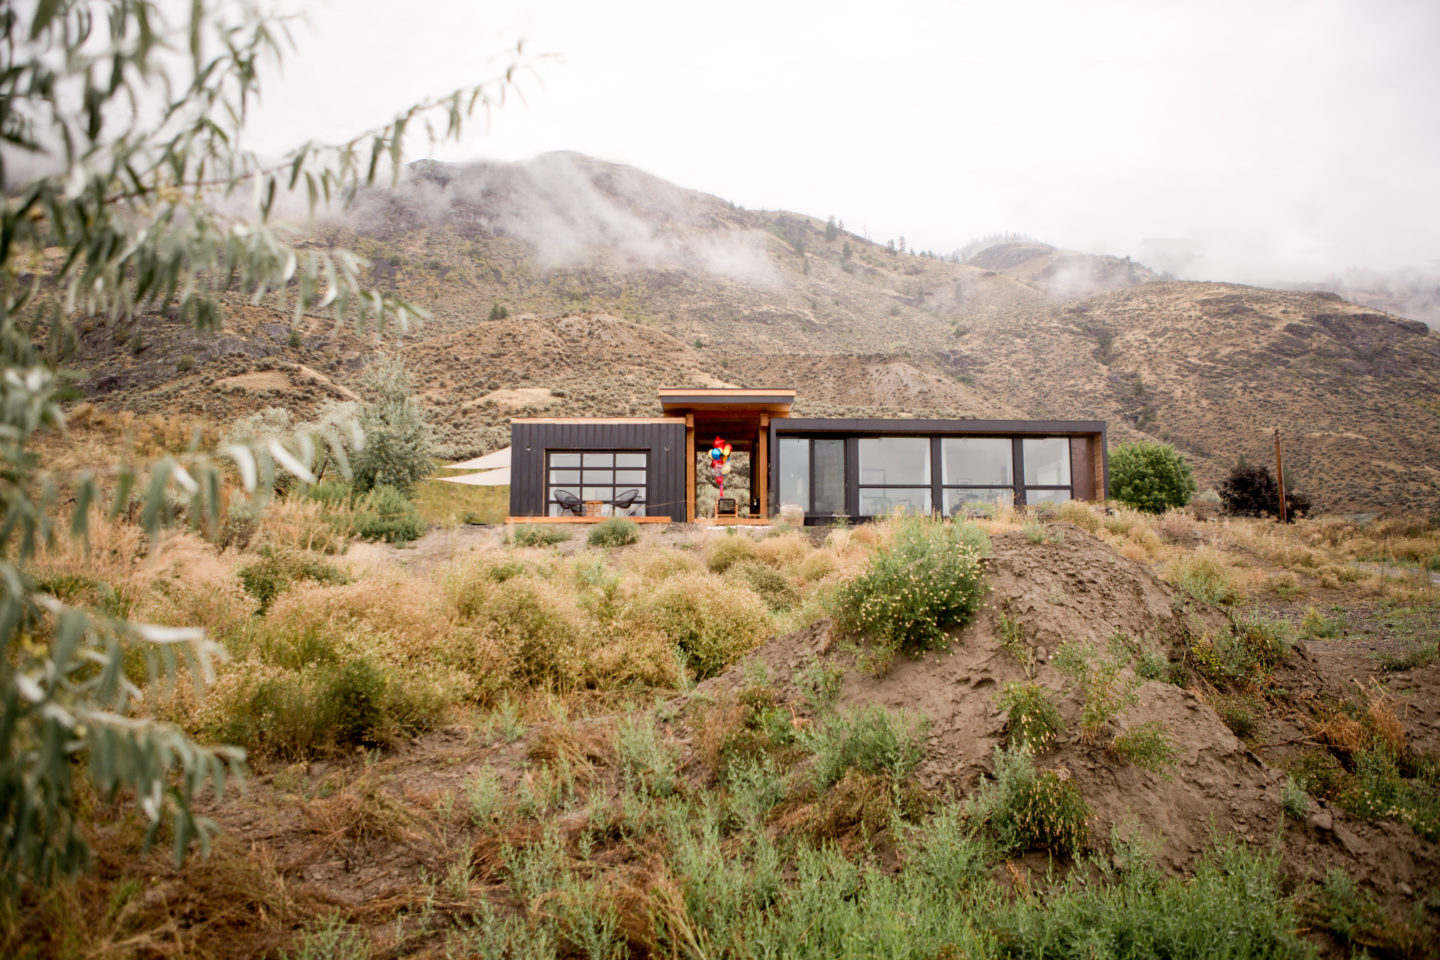 Tourism Kamloops - British Colombia - Blackbox Container Home - Birthday - Party - Sultan Sandur